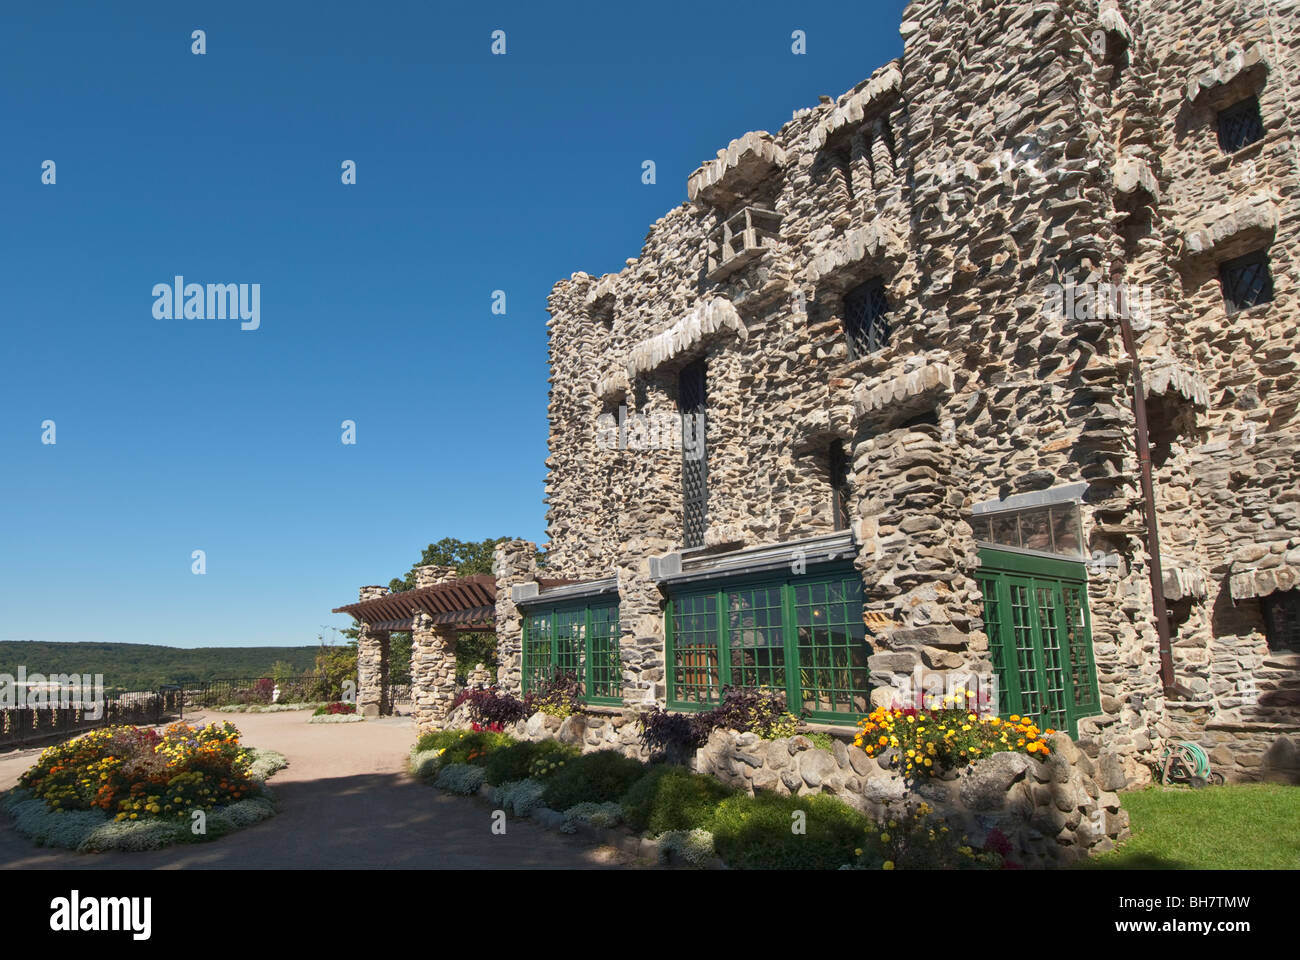 Connecticut East Haddam Gillette Castle State Park former estate of noted actor, director, playwright William Hooker - Stock Image